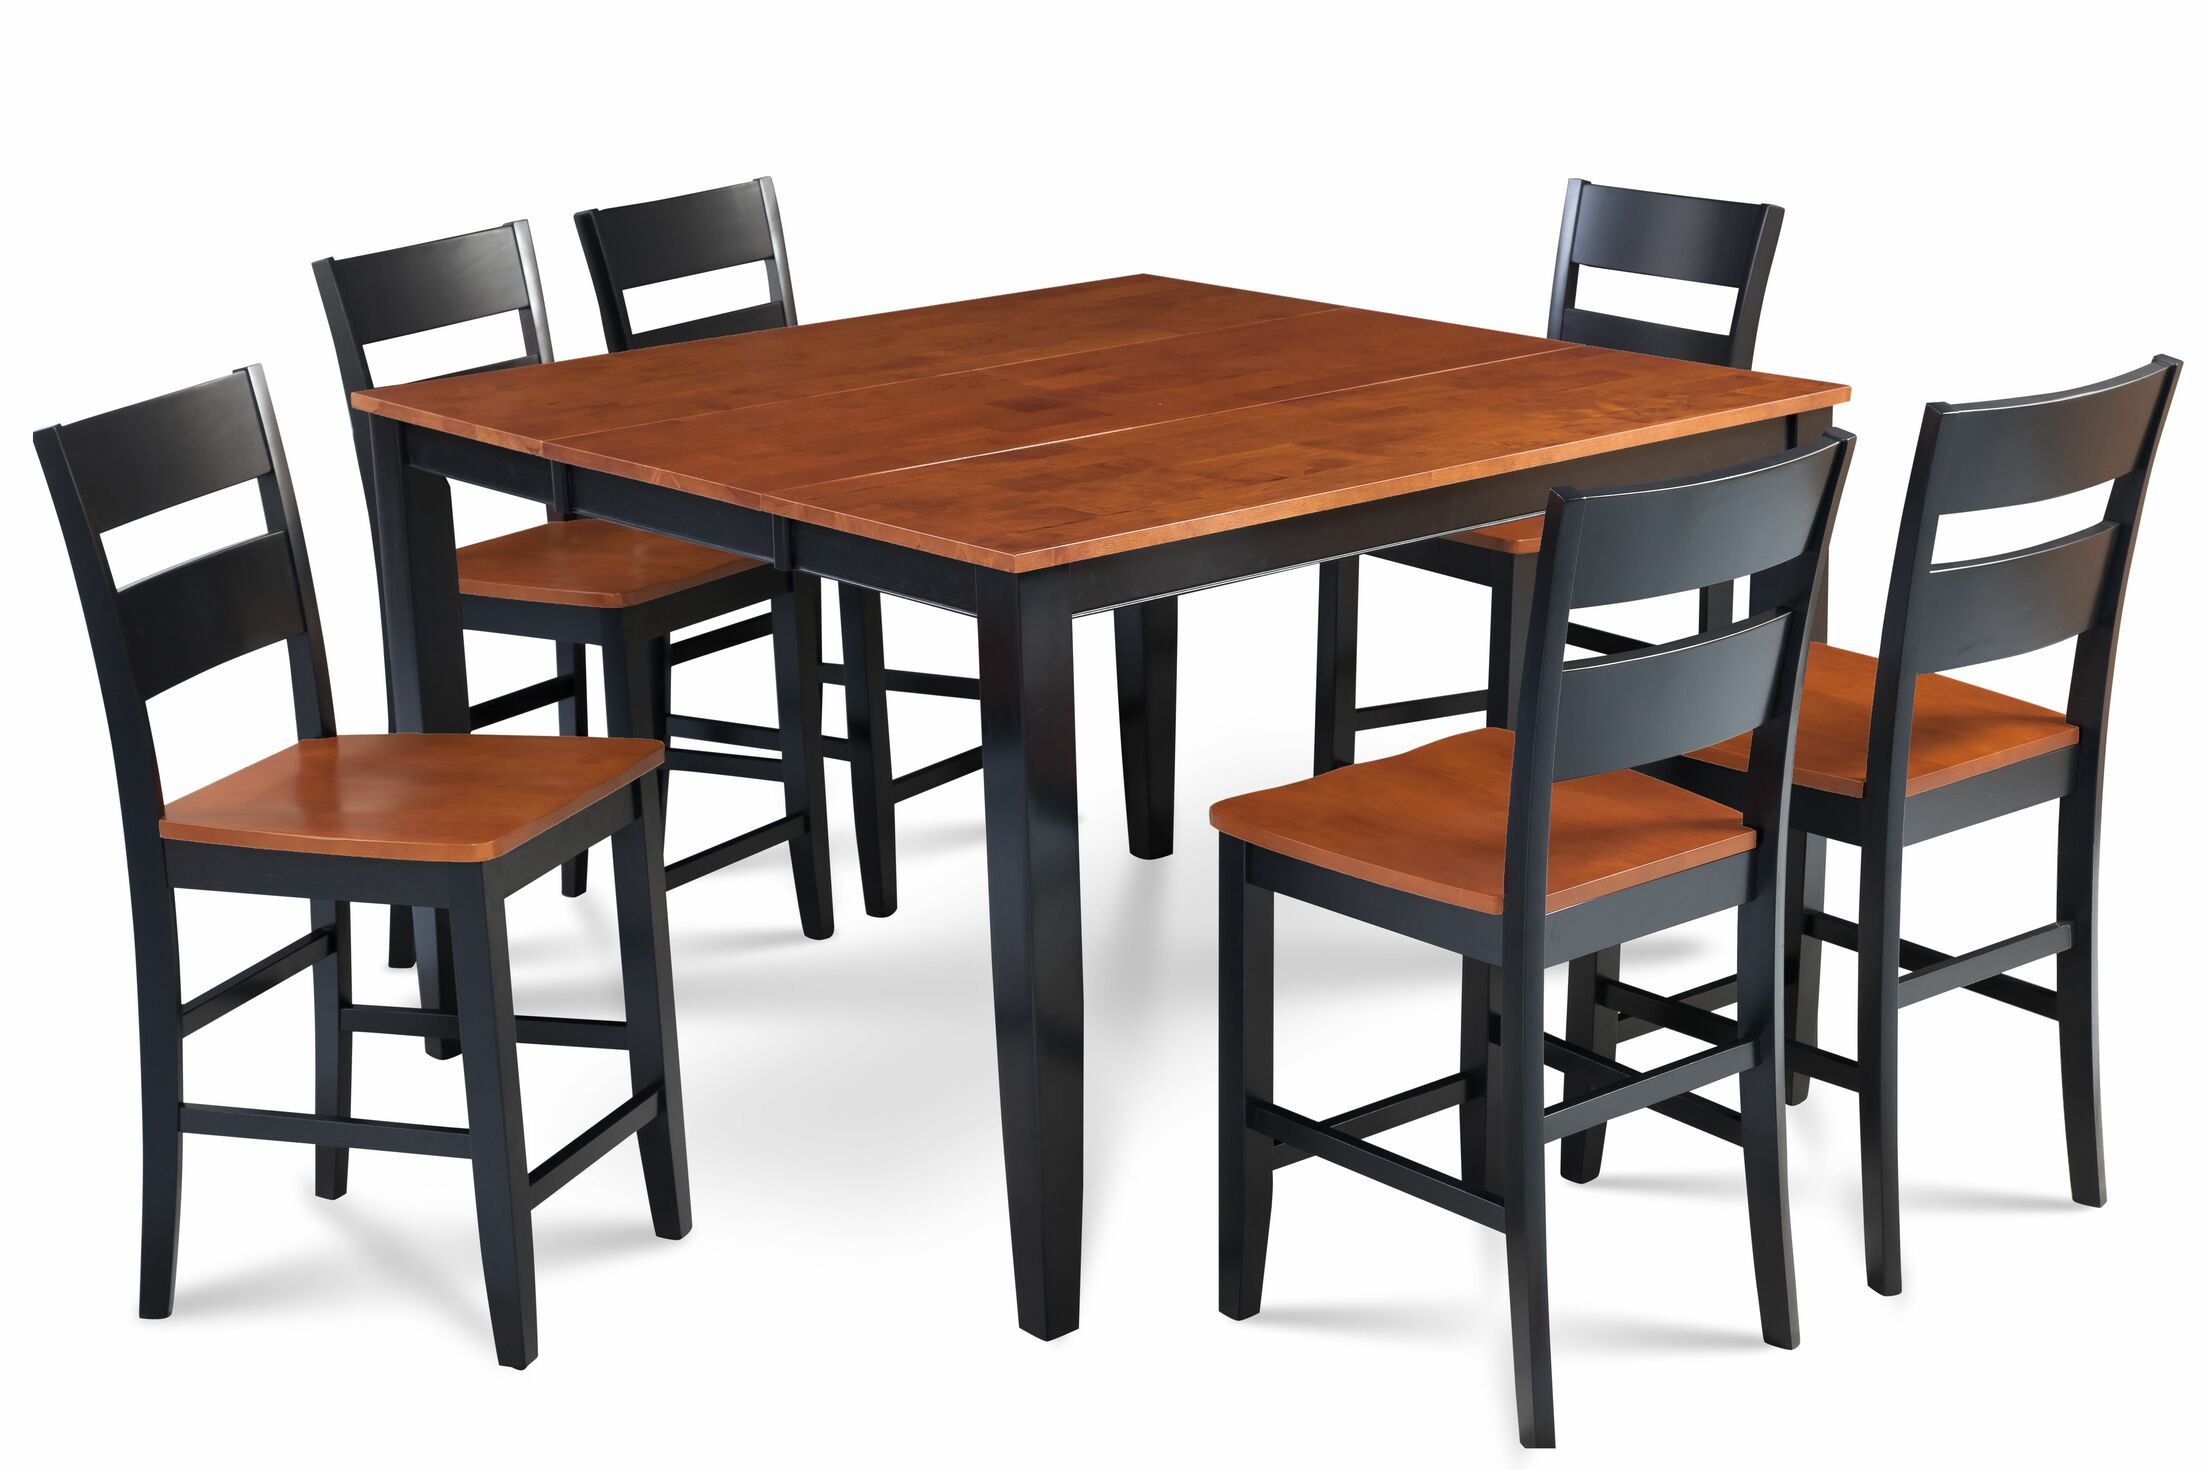 Bennet Solid Wood 7 Piece Counter Height Extendable Solid Wood Dining Set Table Base Color: Black, Table Top Color: Brown